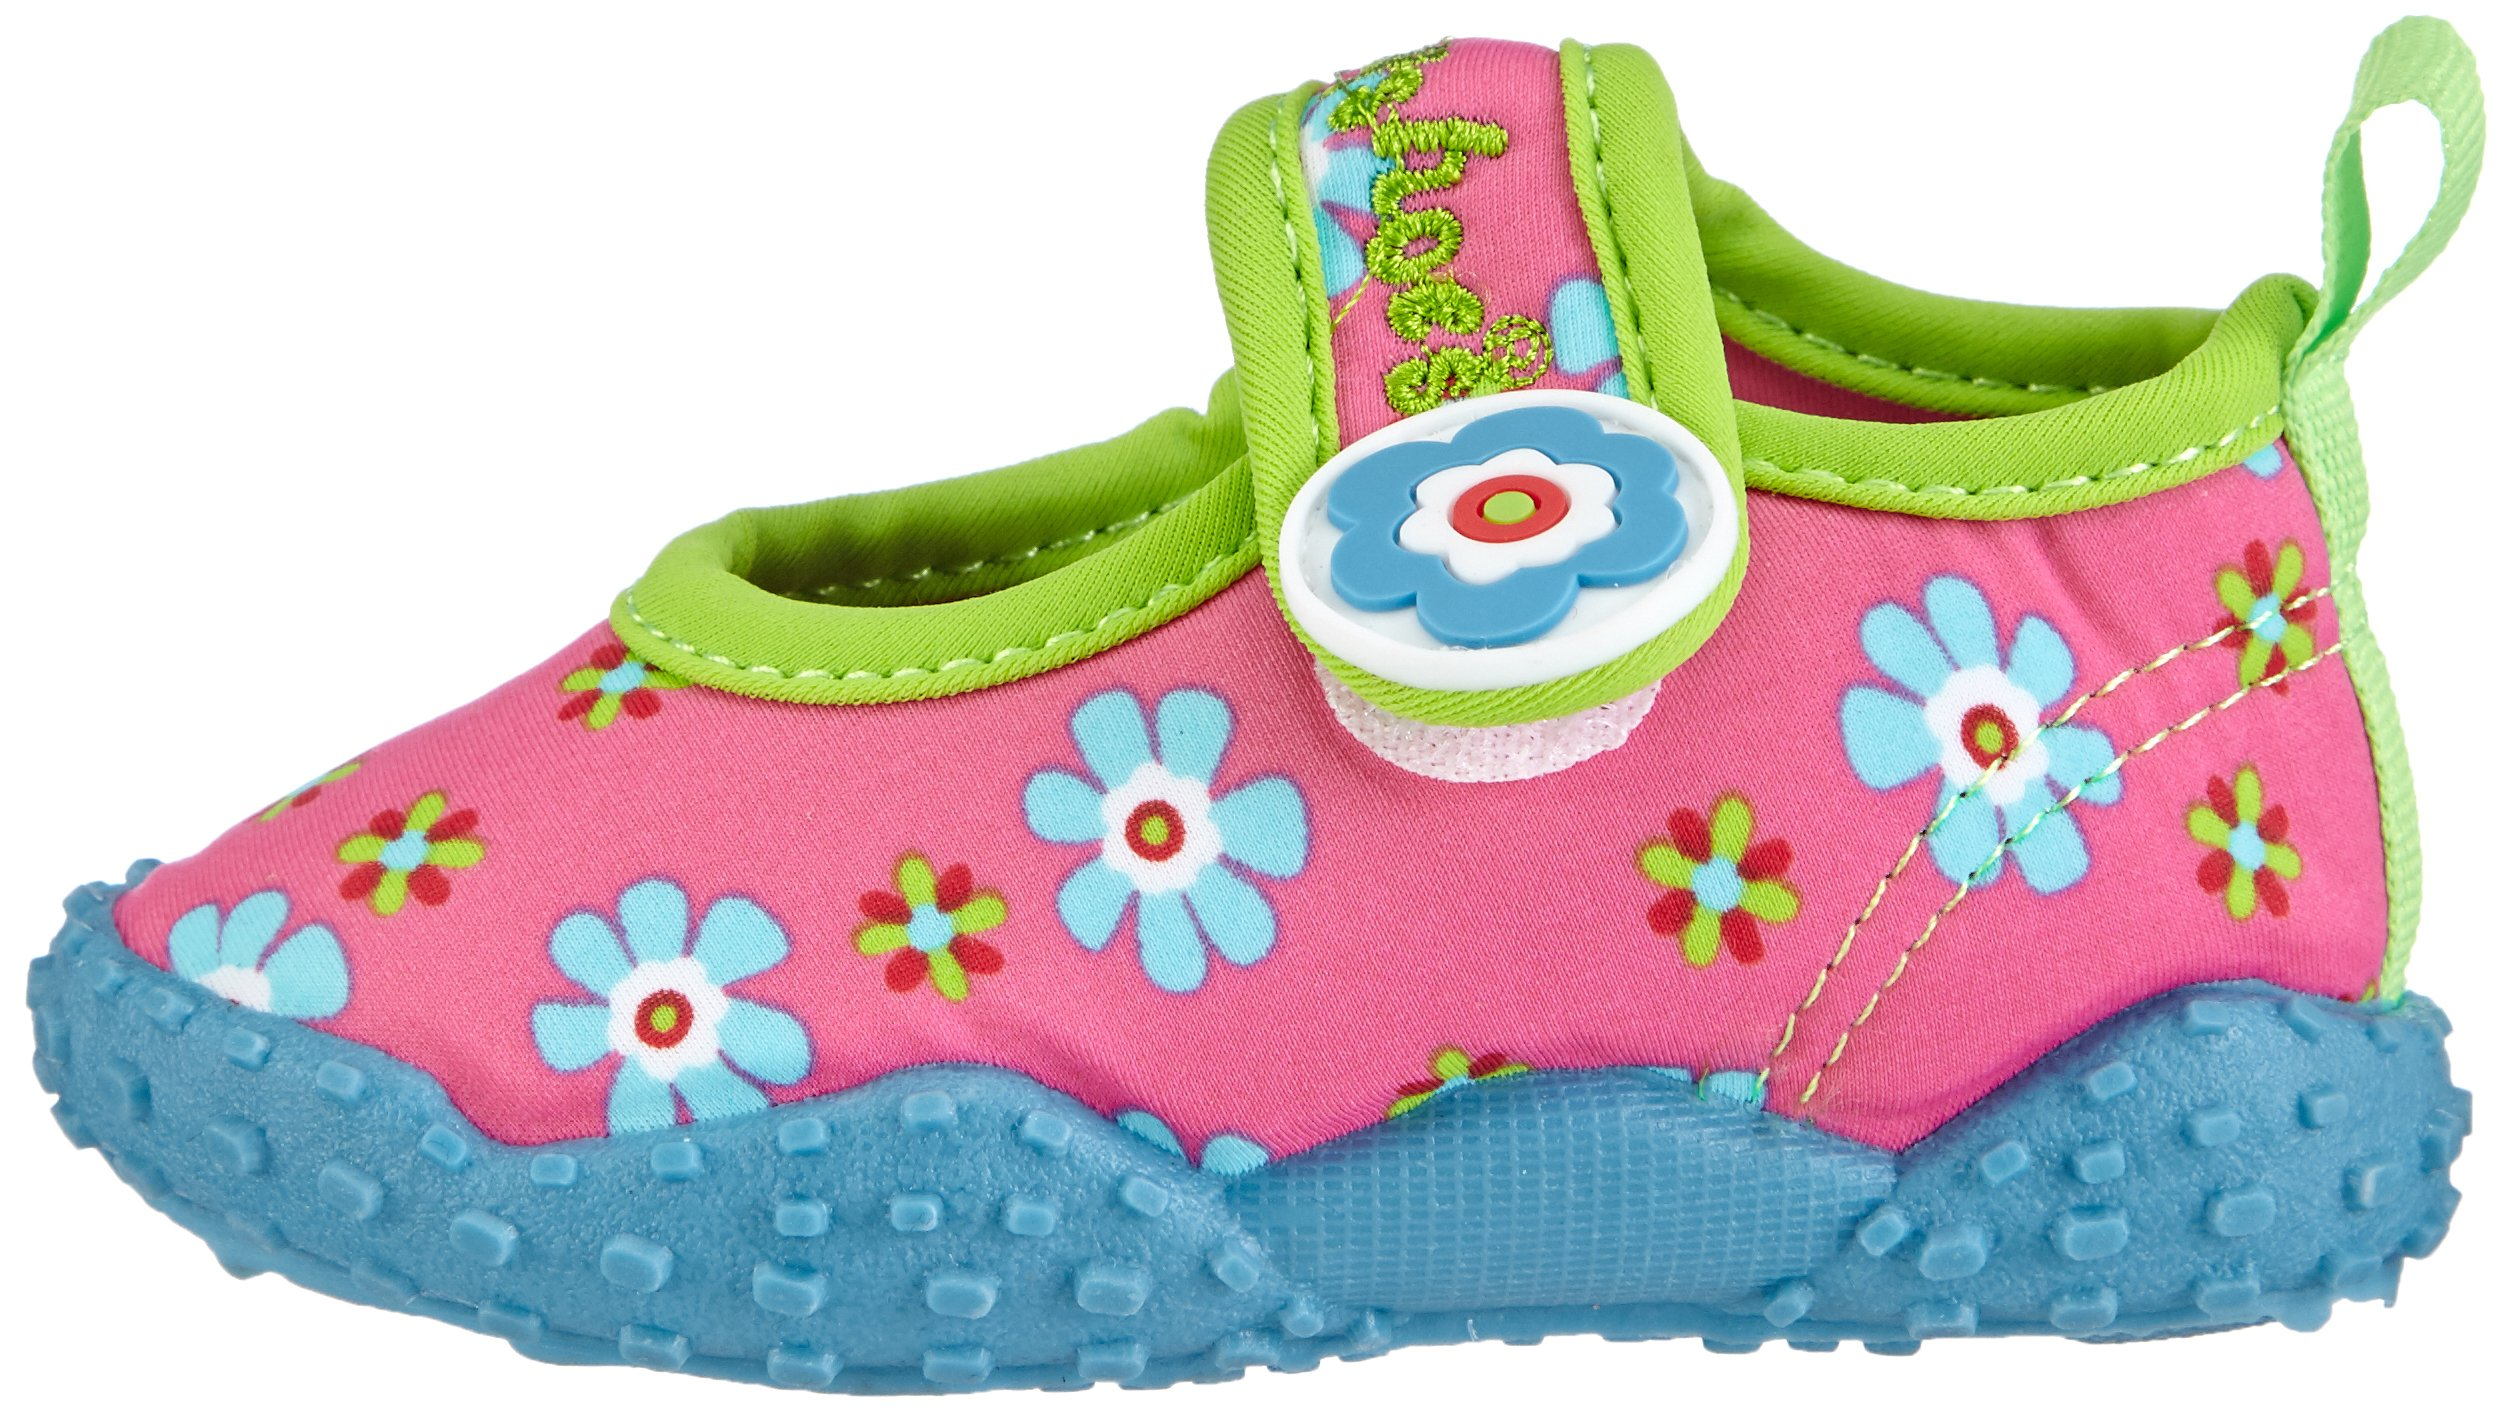 Playshoes Girl's UV Protection Flower Collection Aqua Swimming/Beach Shoes (4.5 M US Toddler) by Playshoes (Image #5)